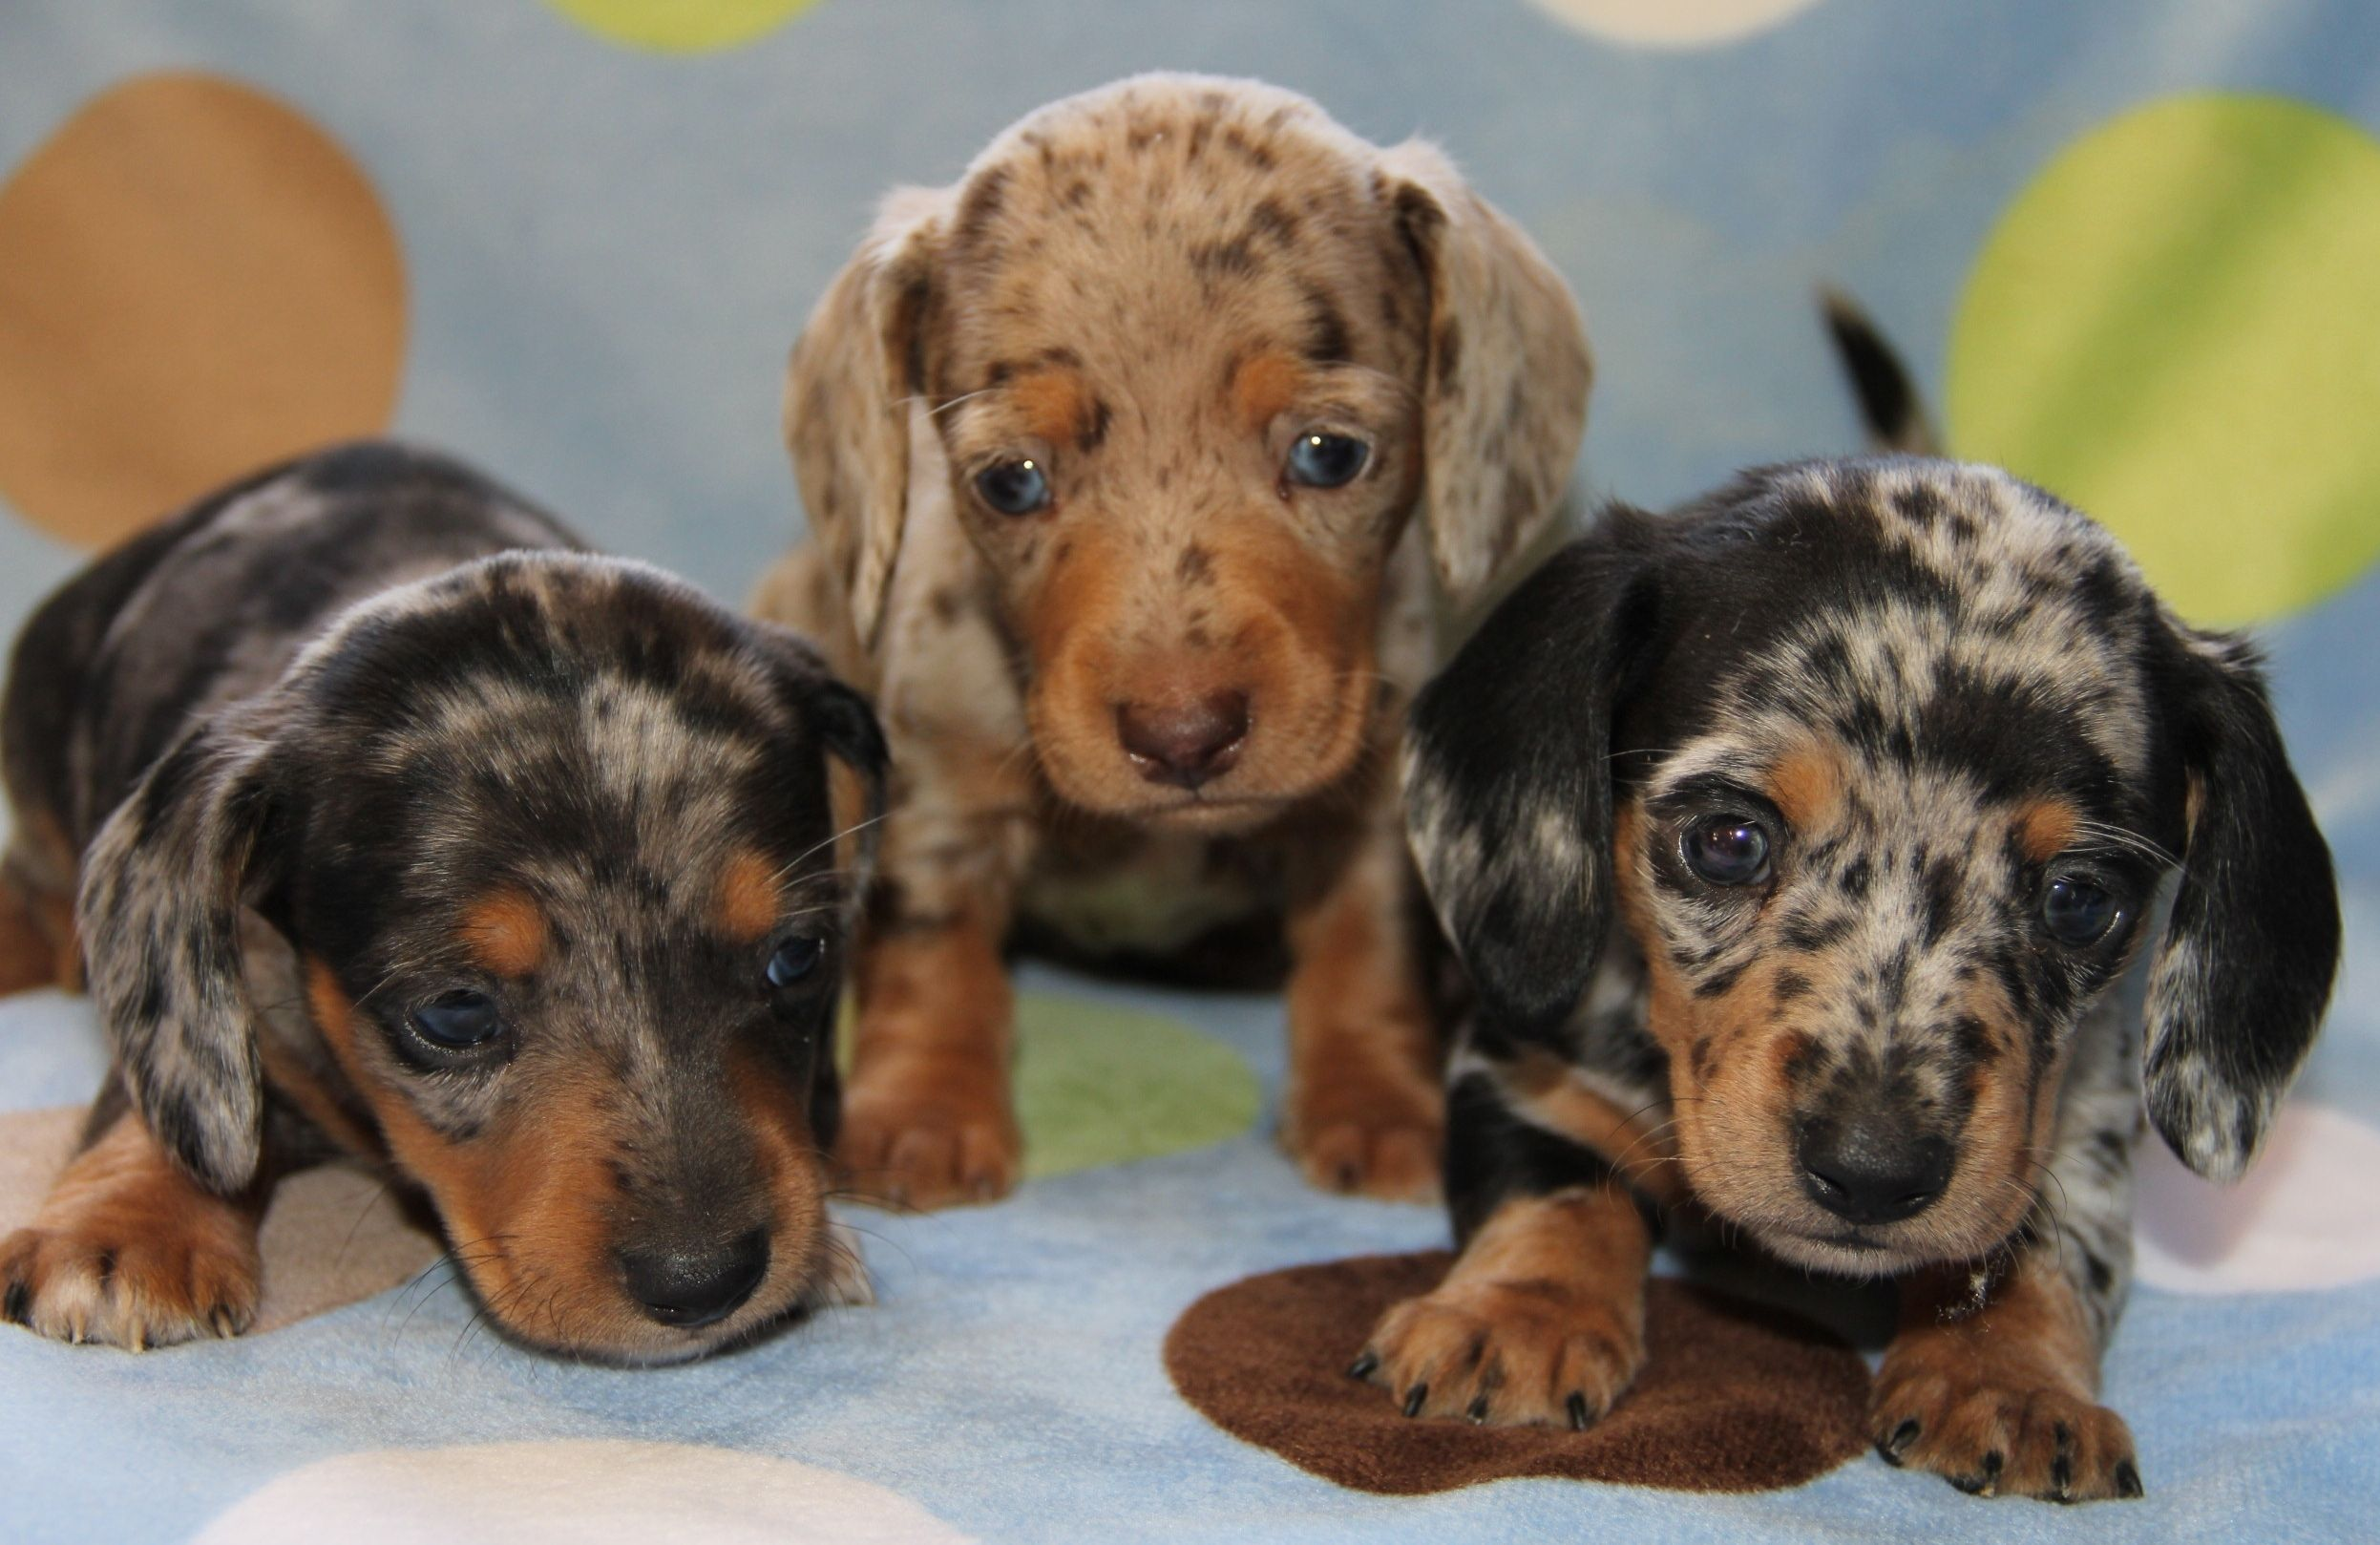 Dachshund Puppies For Sale In Michigan Cheap Dachshund Breed Dapple Dachshund Puppy Dachshund Puppy Miniature